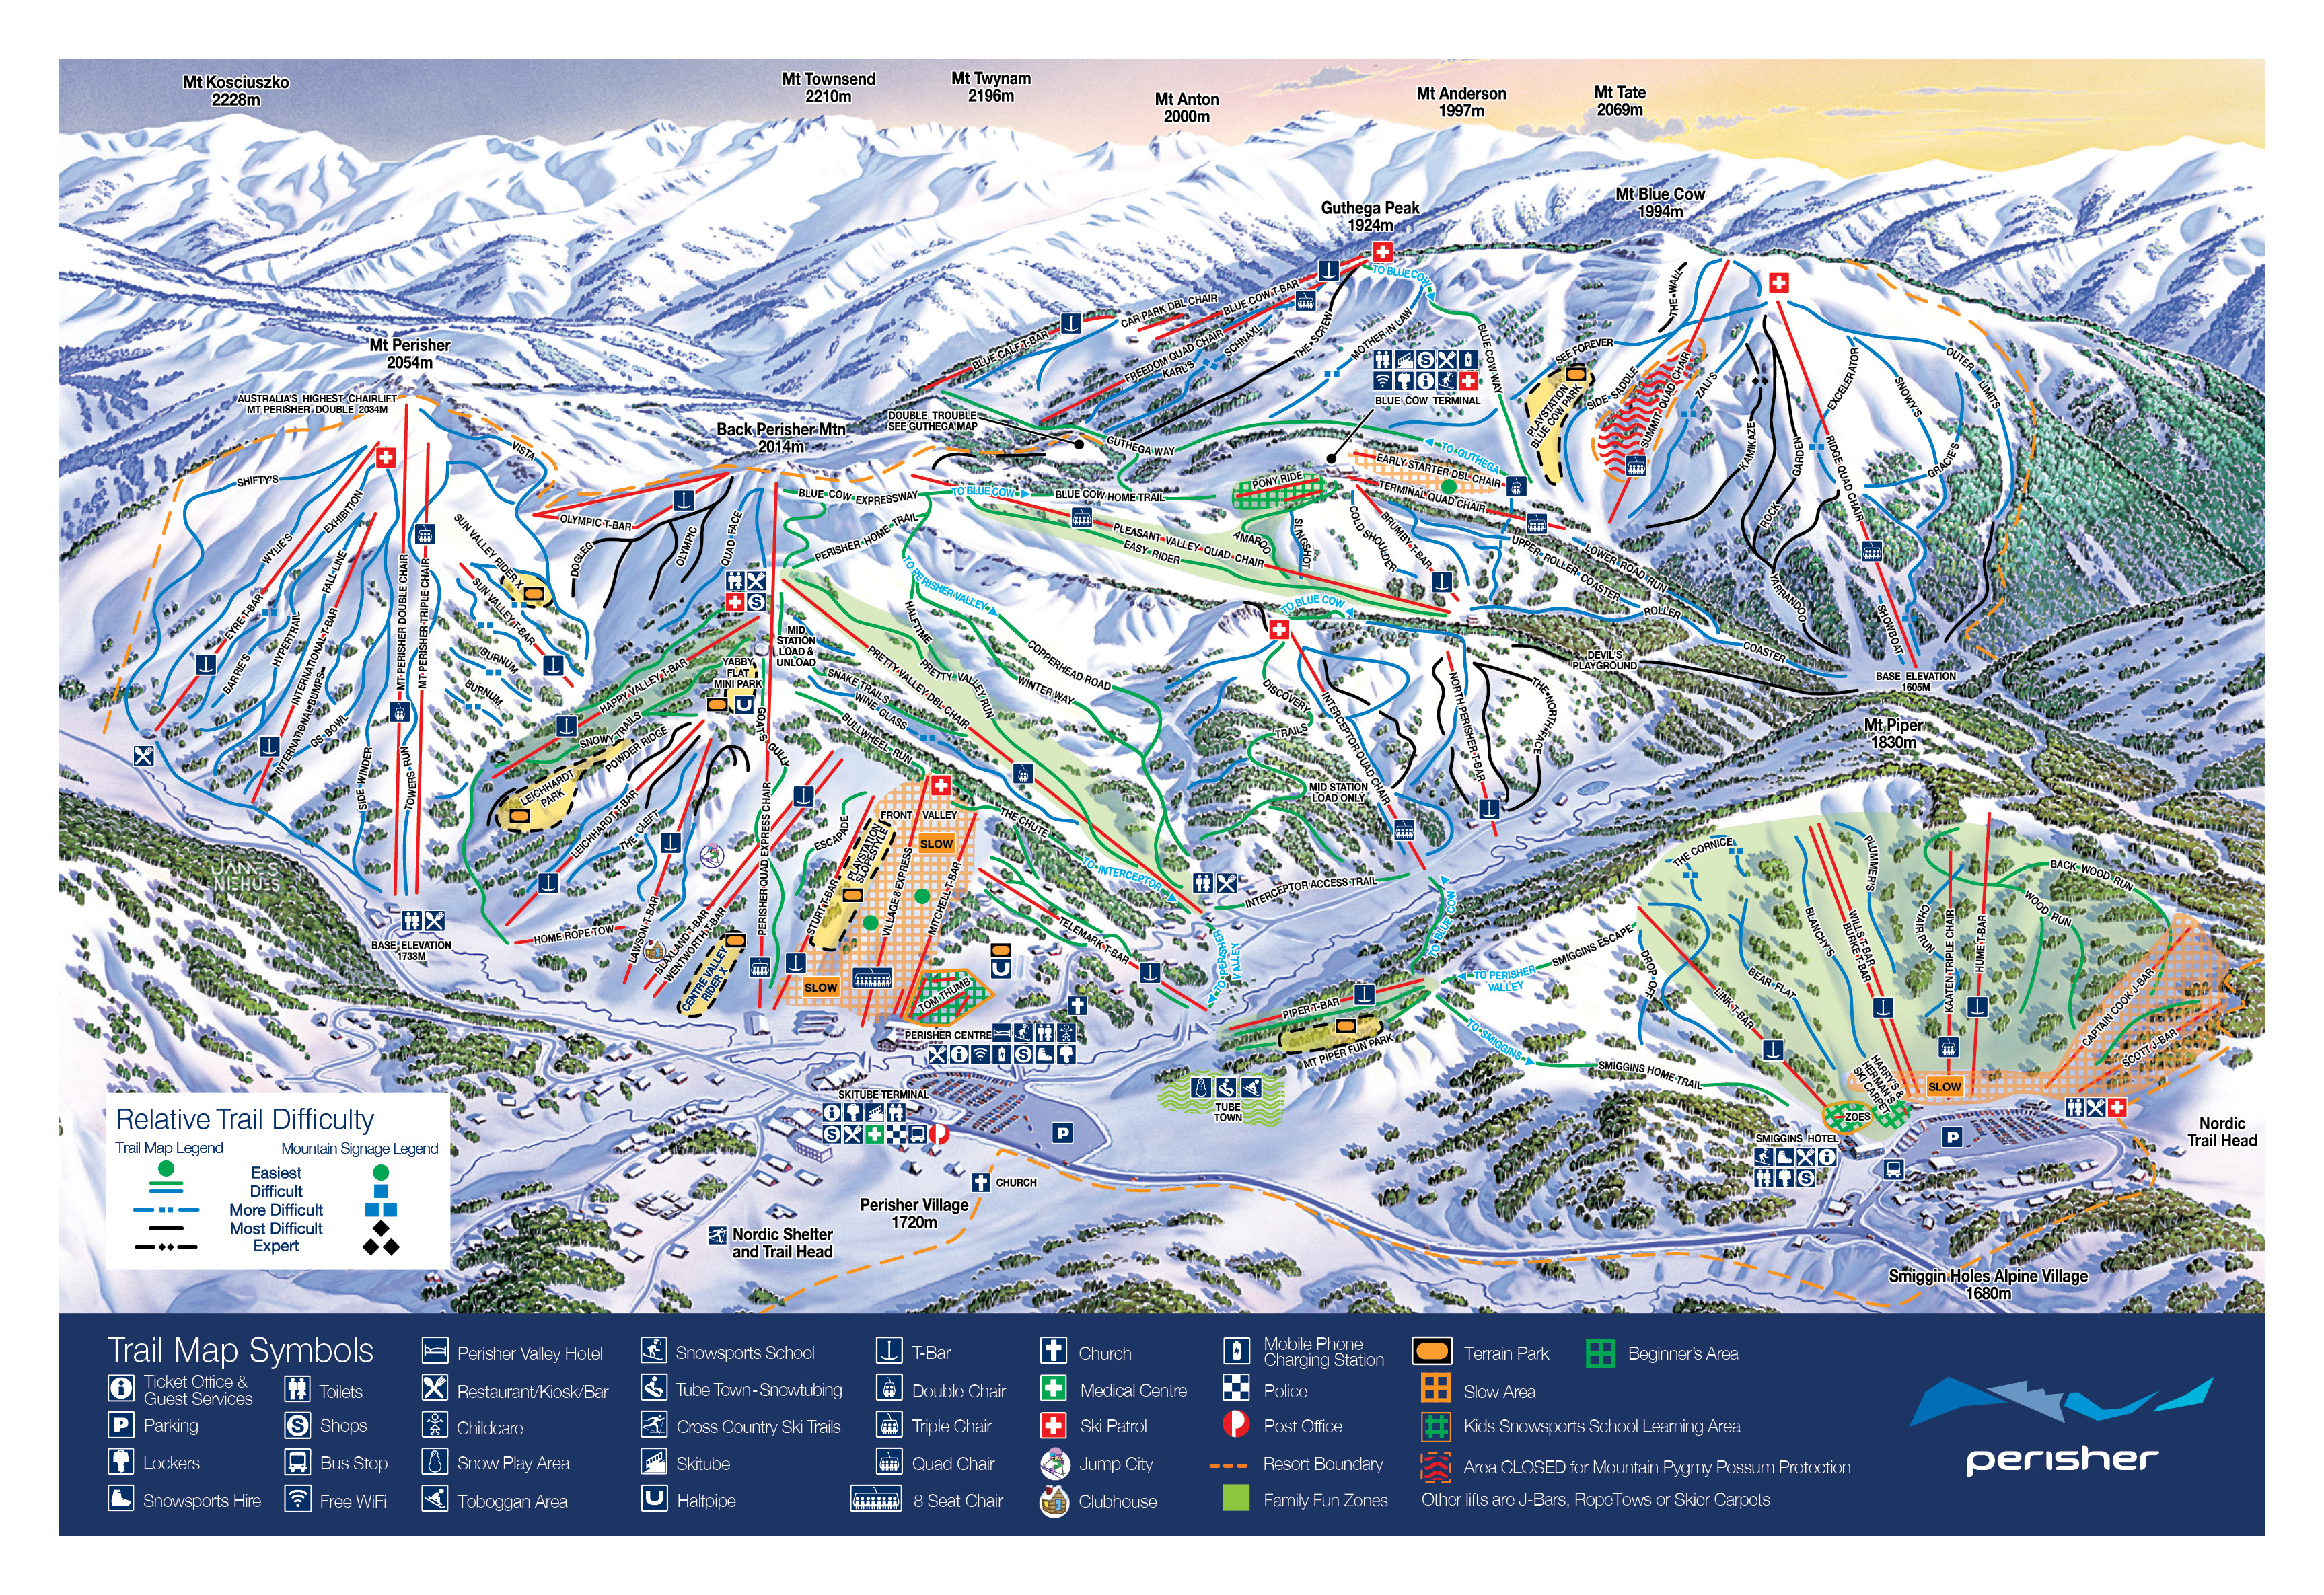 park city ski resort trail map with Trail Maps on Snowbird likewise Mountain Resort Trail Map further 11005 likewise Trail Map likewise Maps.